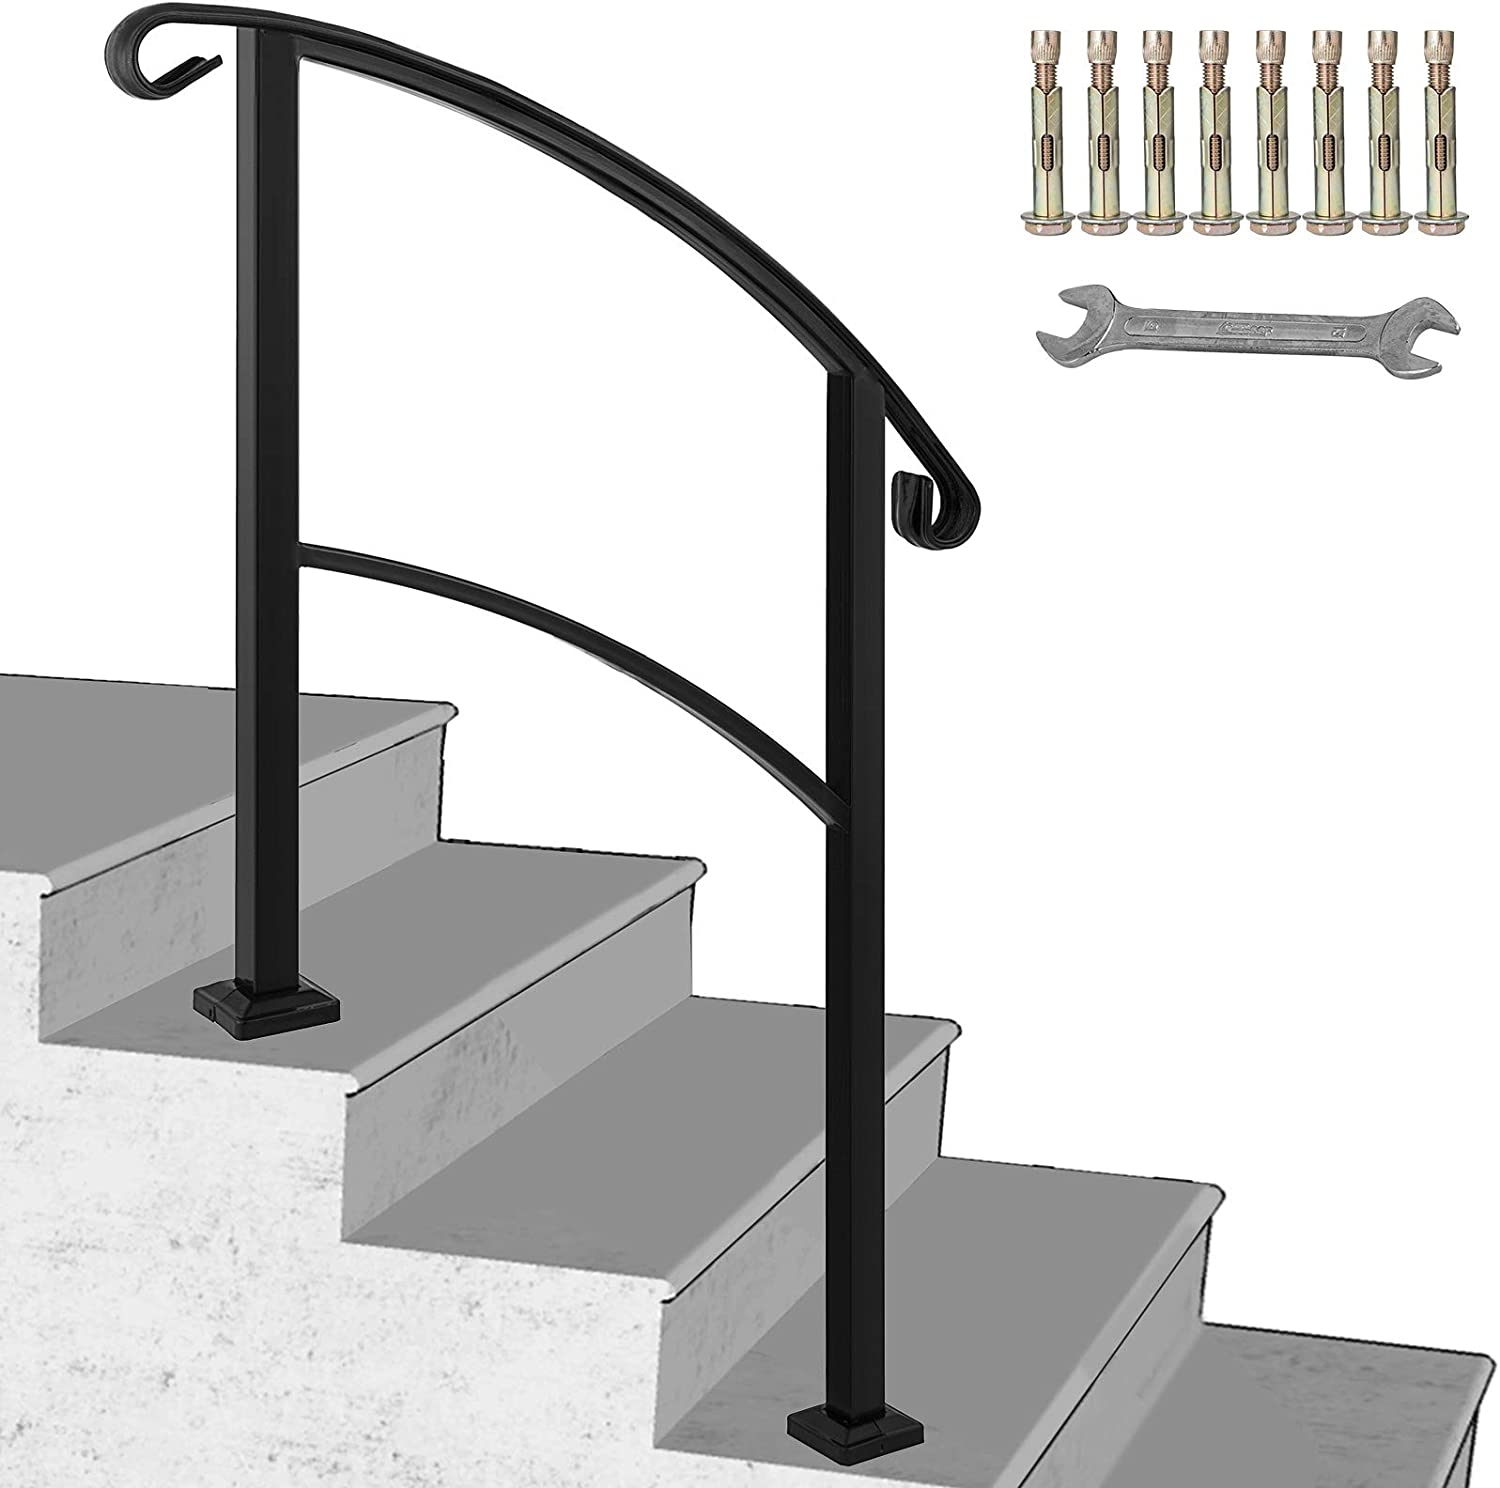 Happybuy 3 Step Transitional Handrail Fits 1 Or 3 Steps Matte | Outdoor Metal Stair Steps | Stair Railing | Stair Riser | Deck Stairs | Stair Stringer | Wrought Iron Railings